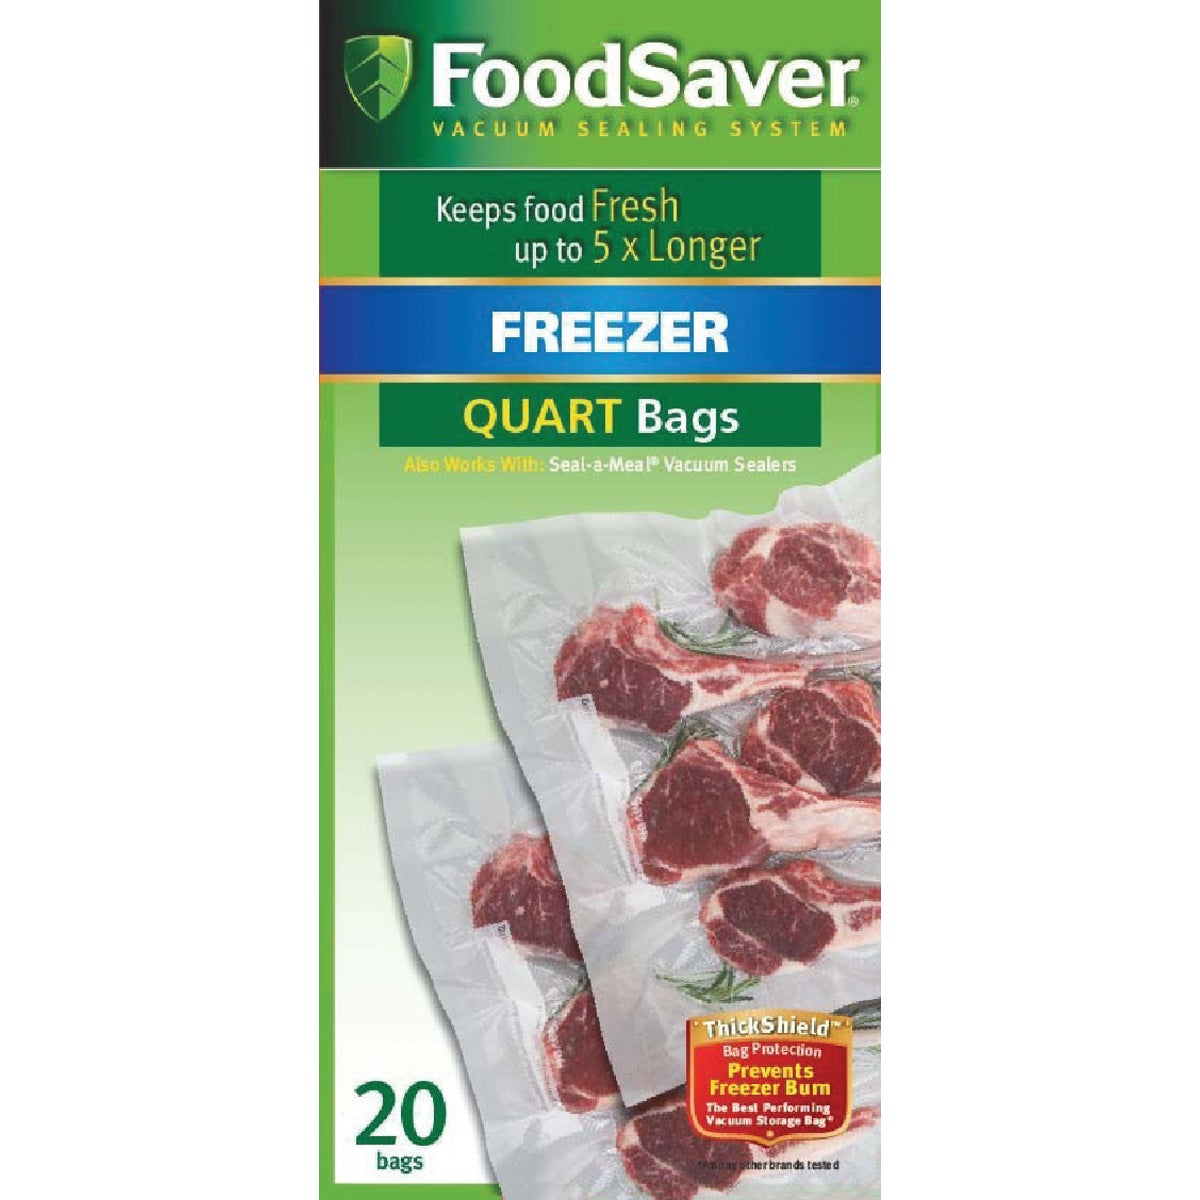 20CT QT FOOD SAVER BAGS - FSFSBF0216-000 by Jarden Cs